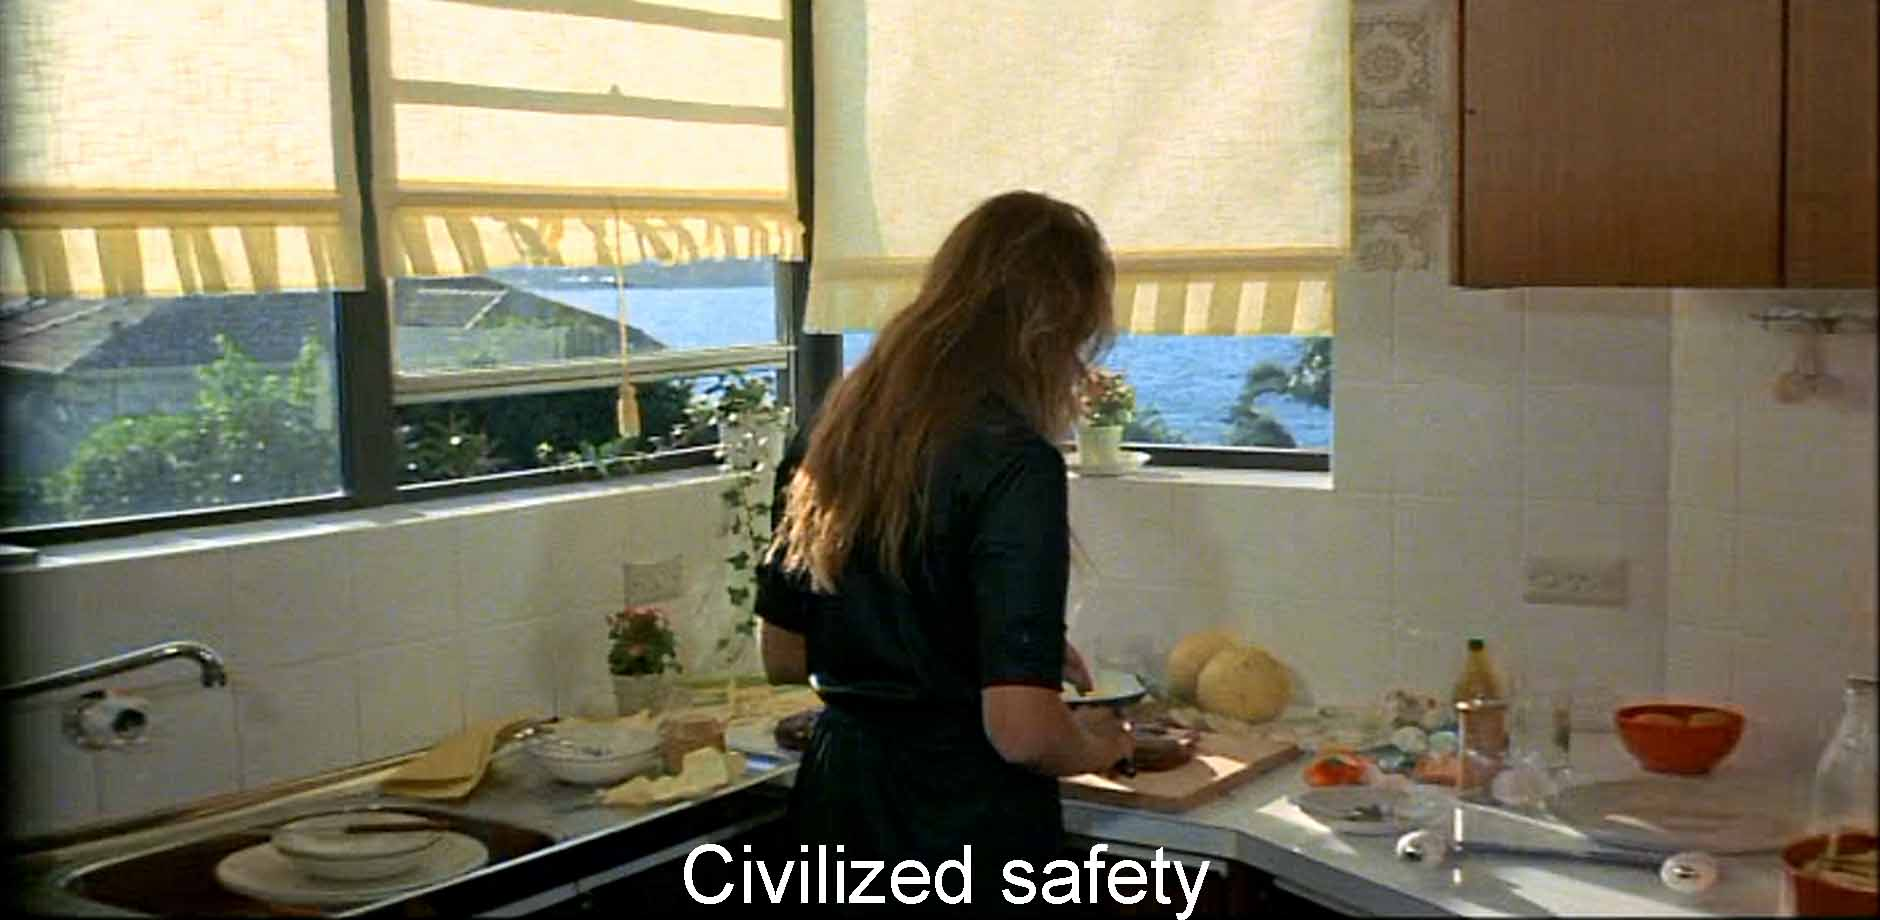 Civilized safety